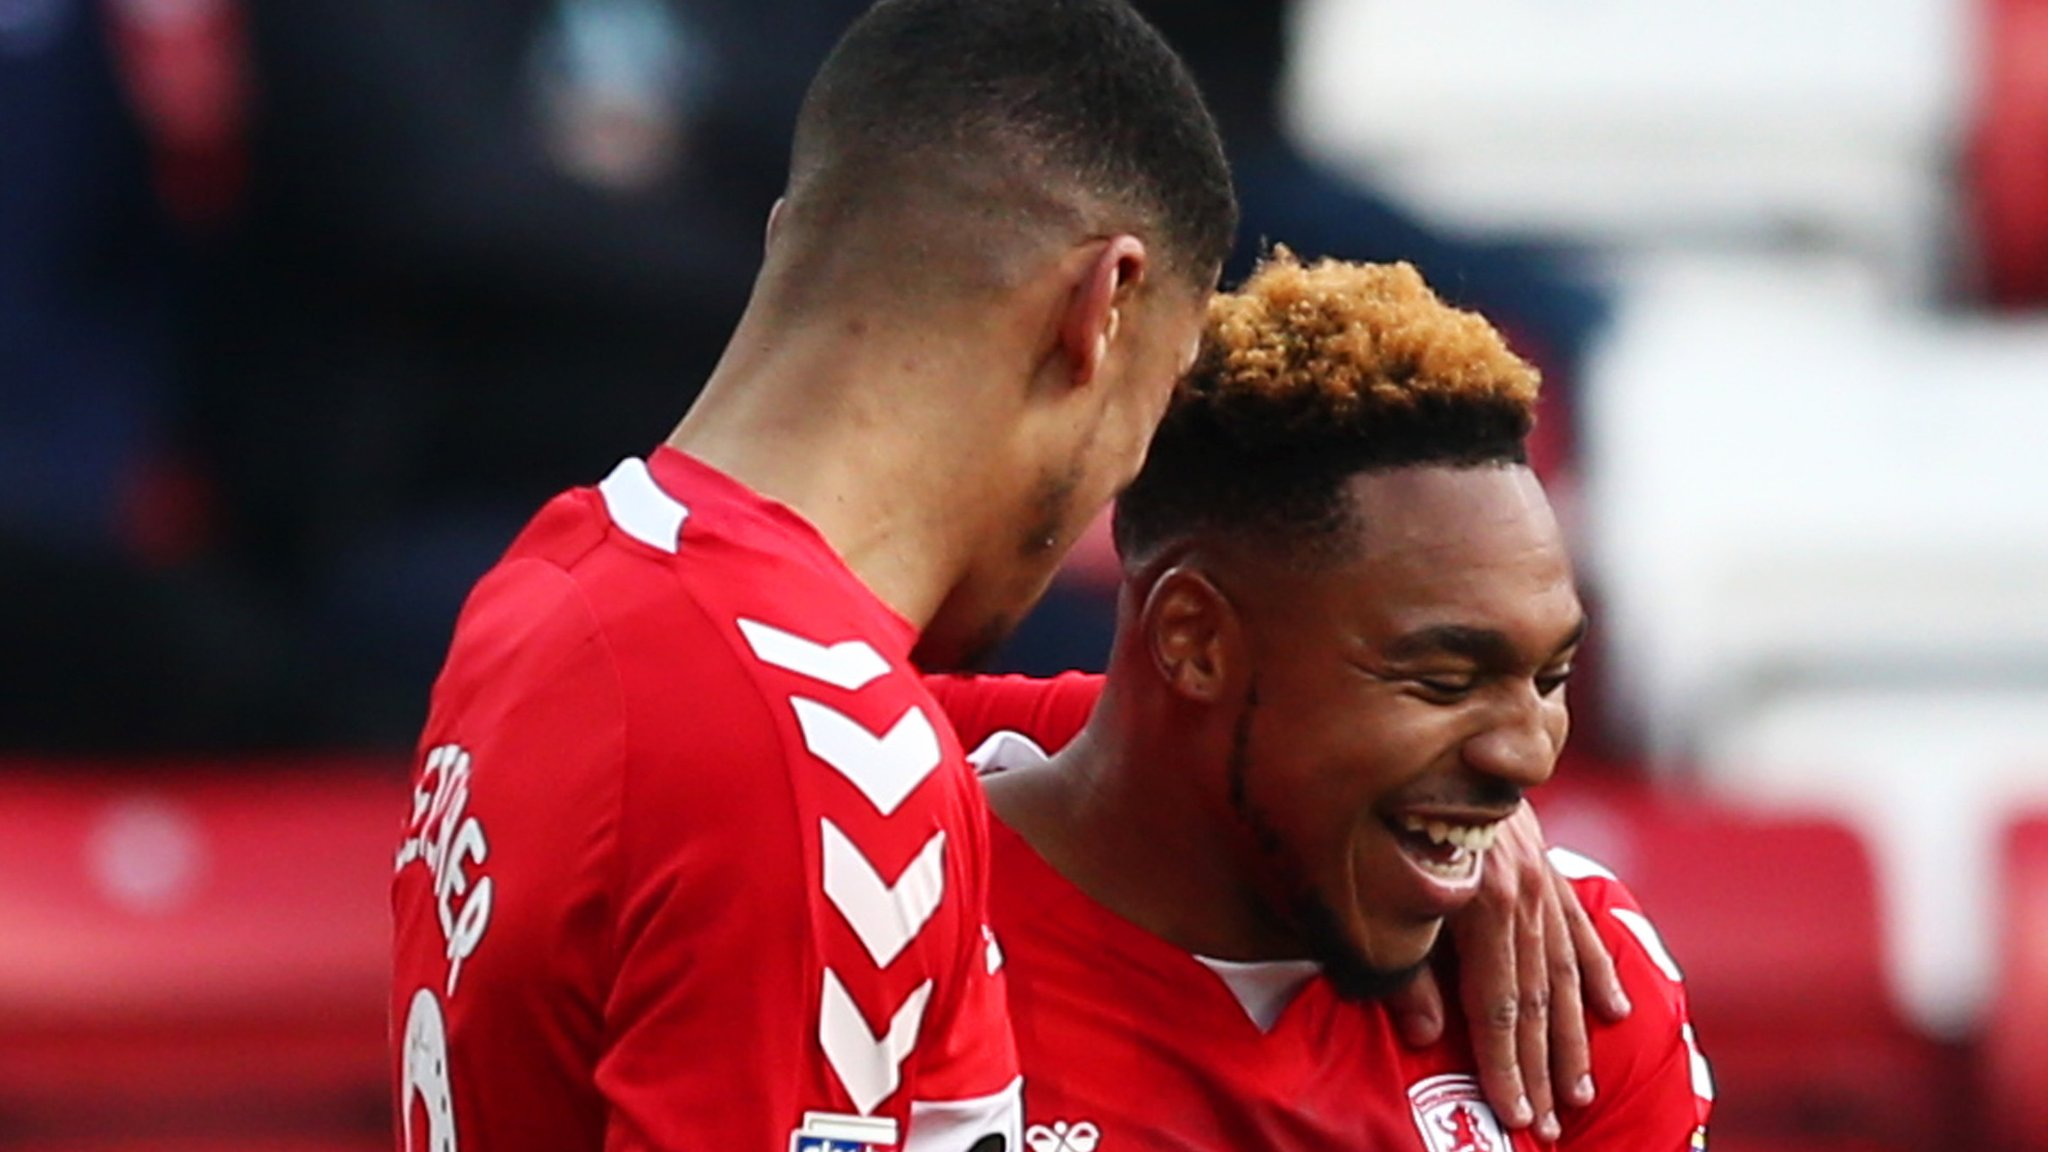 Blackburn 0-1 Middlesbrough: Assombalonga strikes as Boro beat 10-man hosts